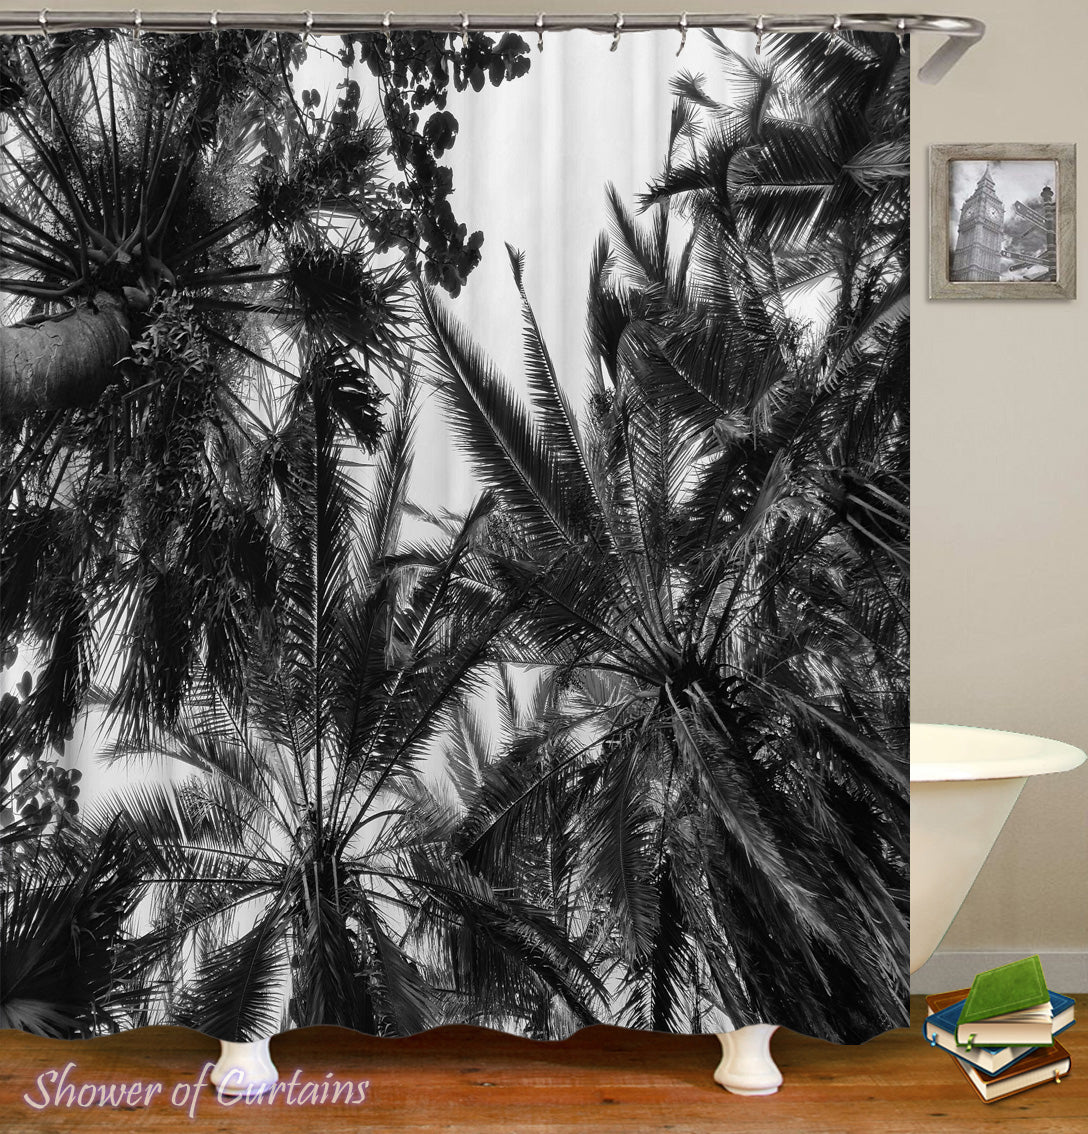 Shower Curtains Black White Palm Trees Shower Of Curtains